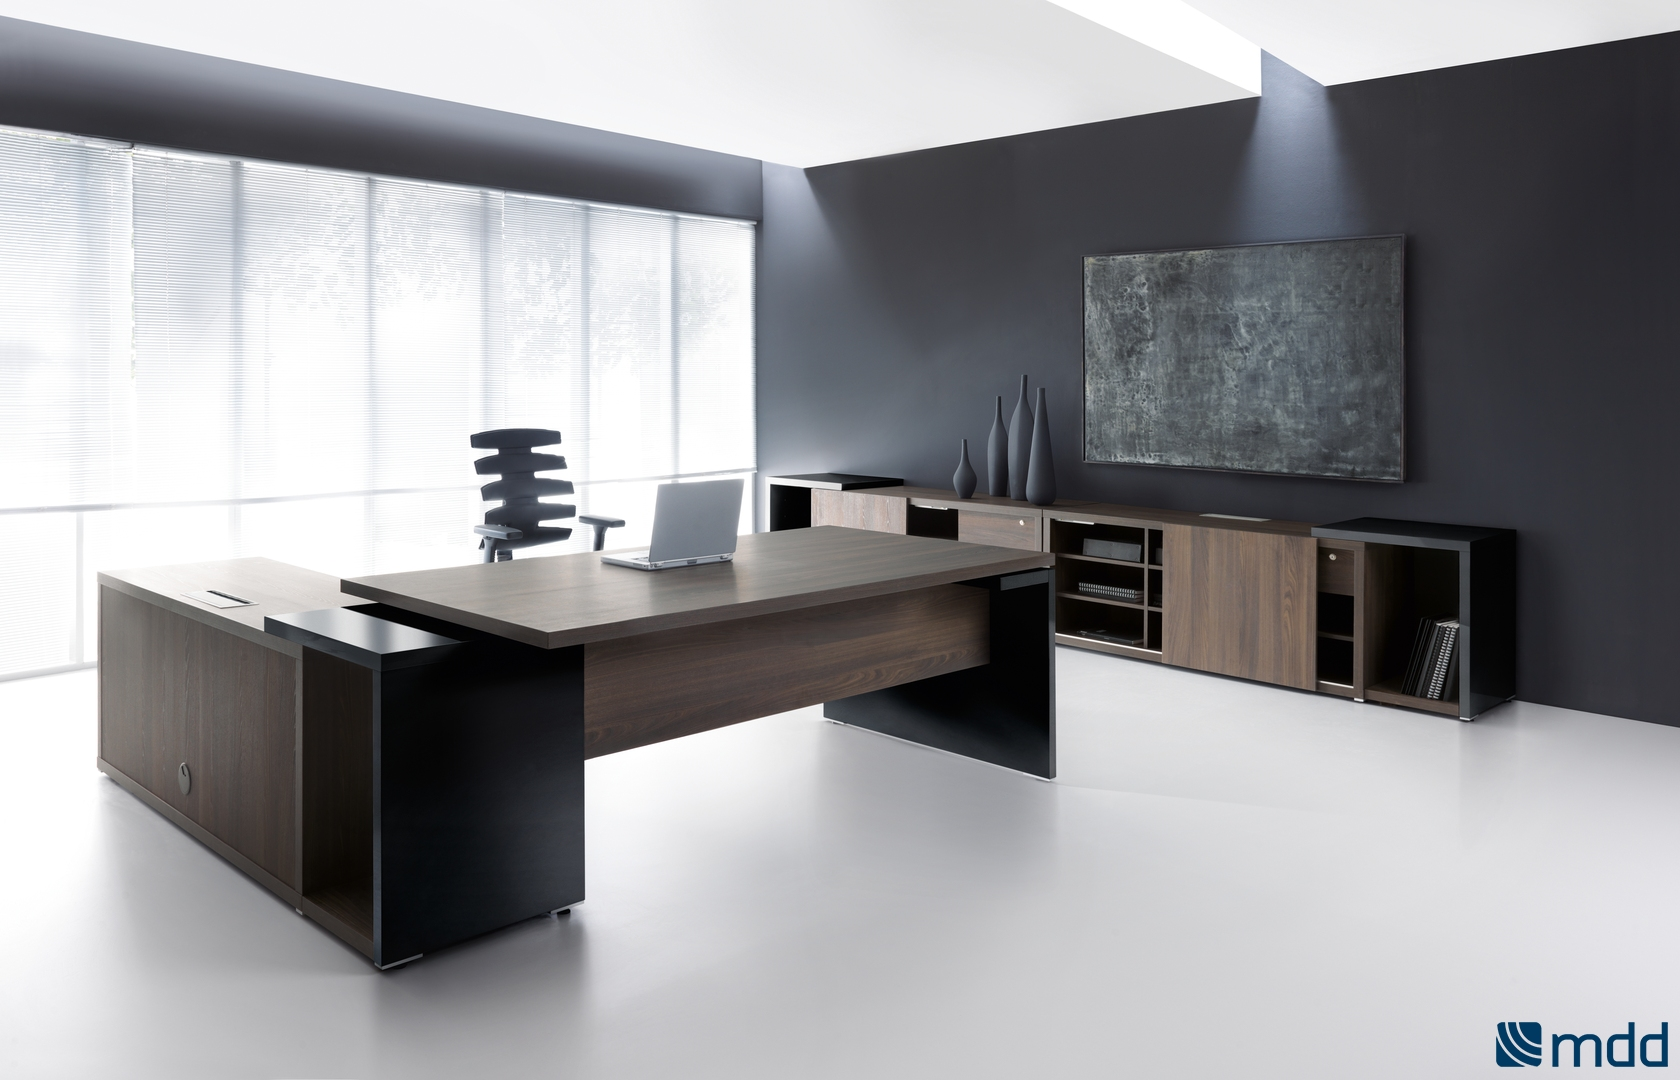 mobilier de bureau banque d 39 accueil mobilier design. Black Bedroom Furniture Sets. Home Design Ideas